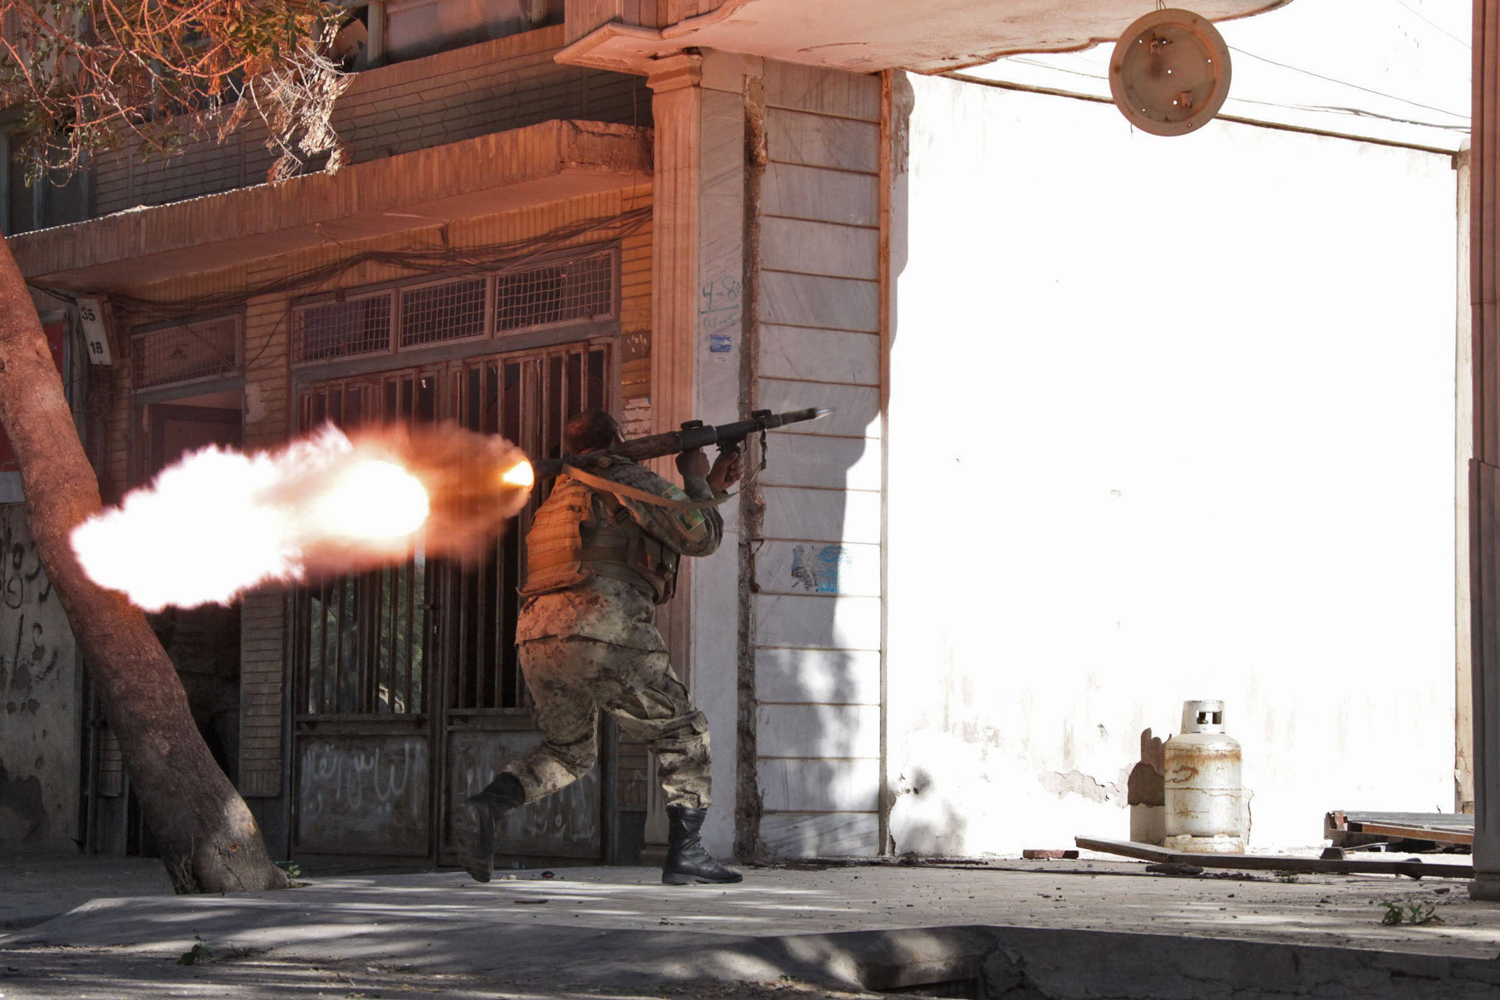 May 23, 2014. An Afghanistan National Army (ANA) soldier fires his weapon at the site of a clash between insurgents and security forces at  the Indian Consulate in Herat, Afghanistan.